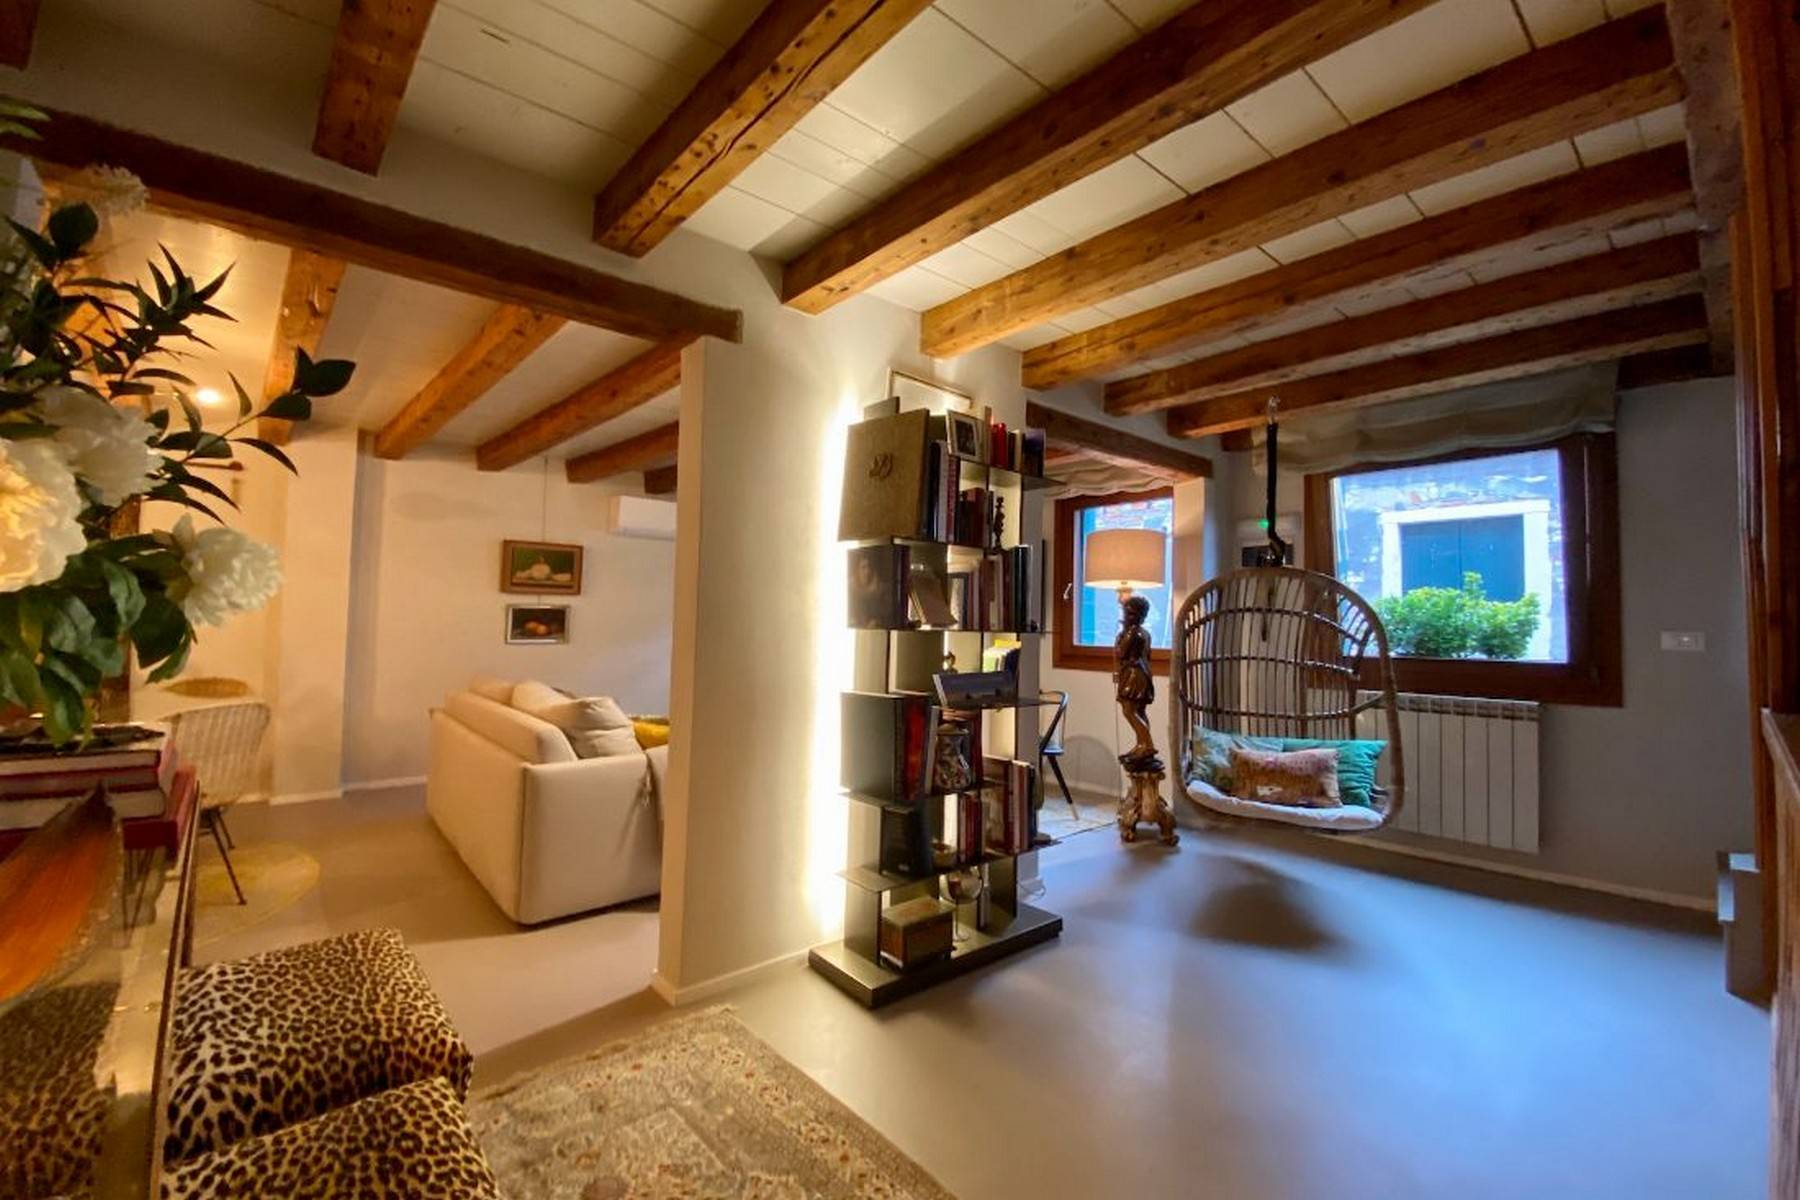 Castello design duplex with charming roof terrace - 2